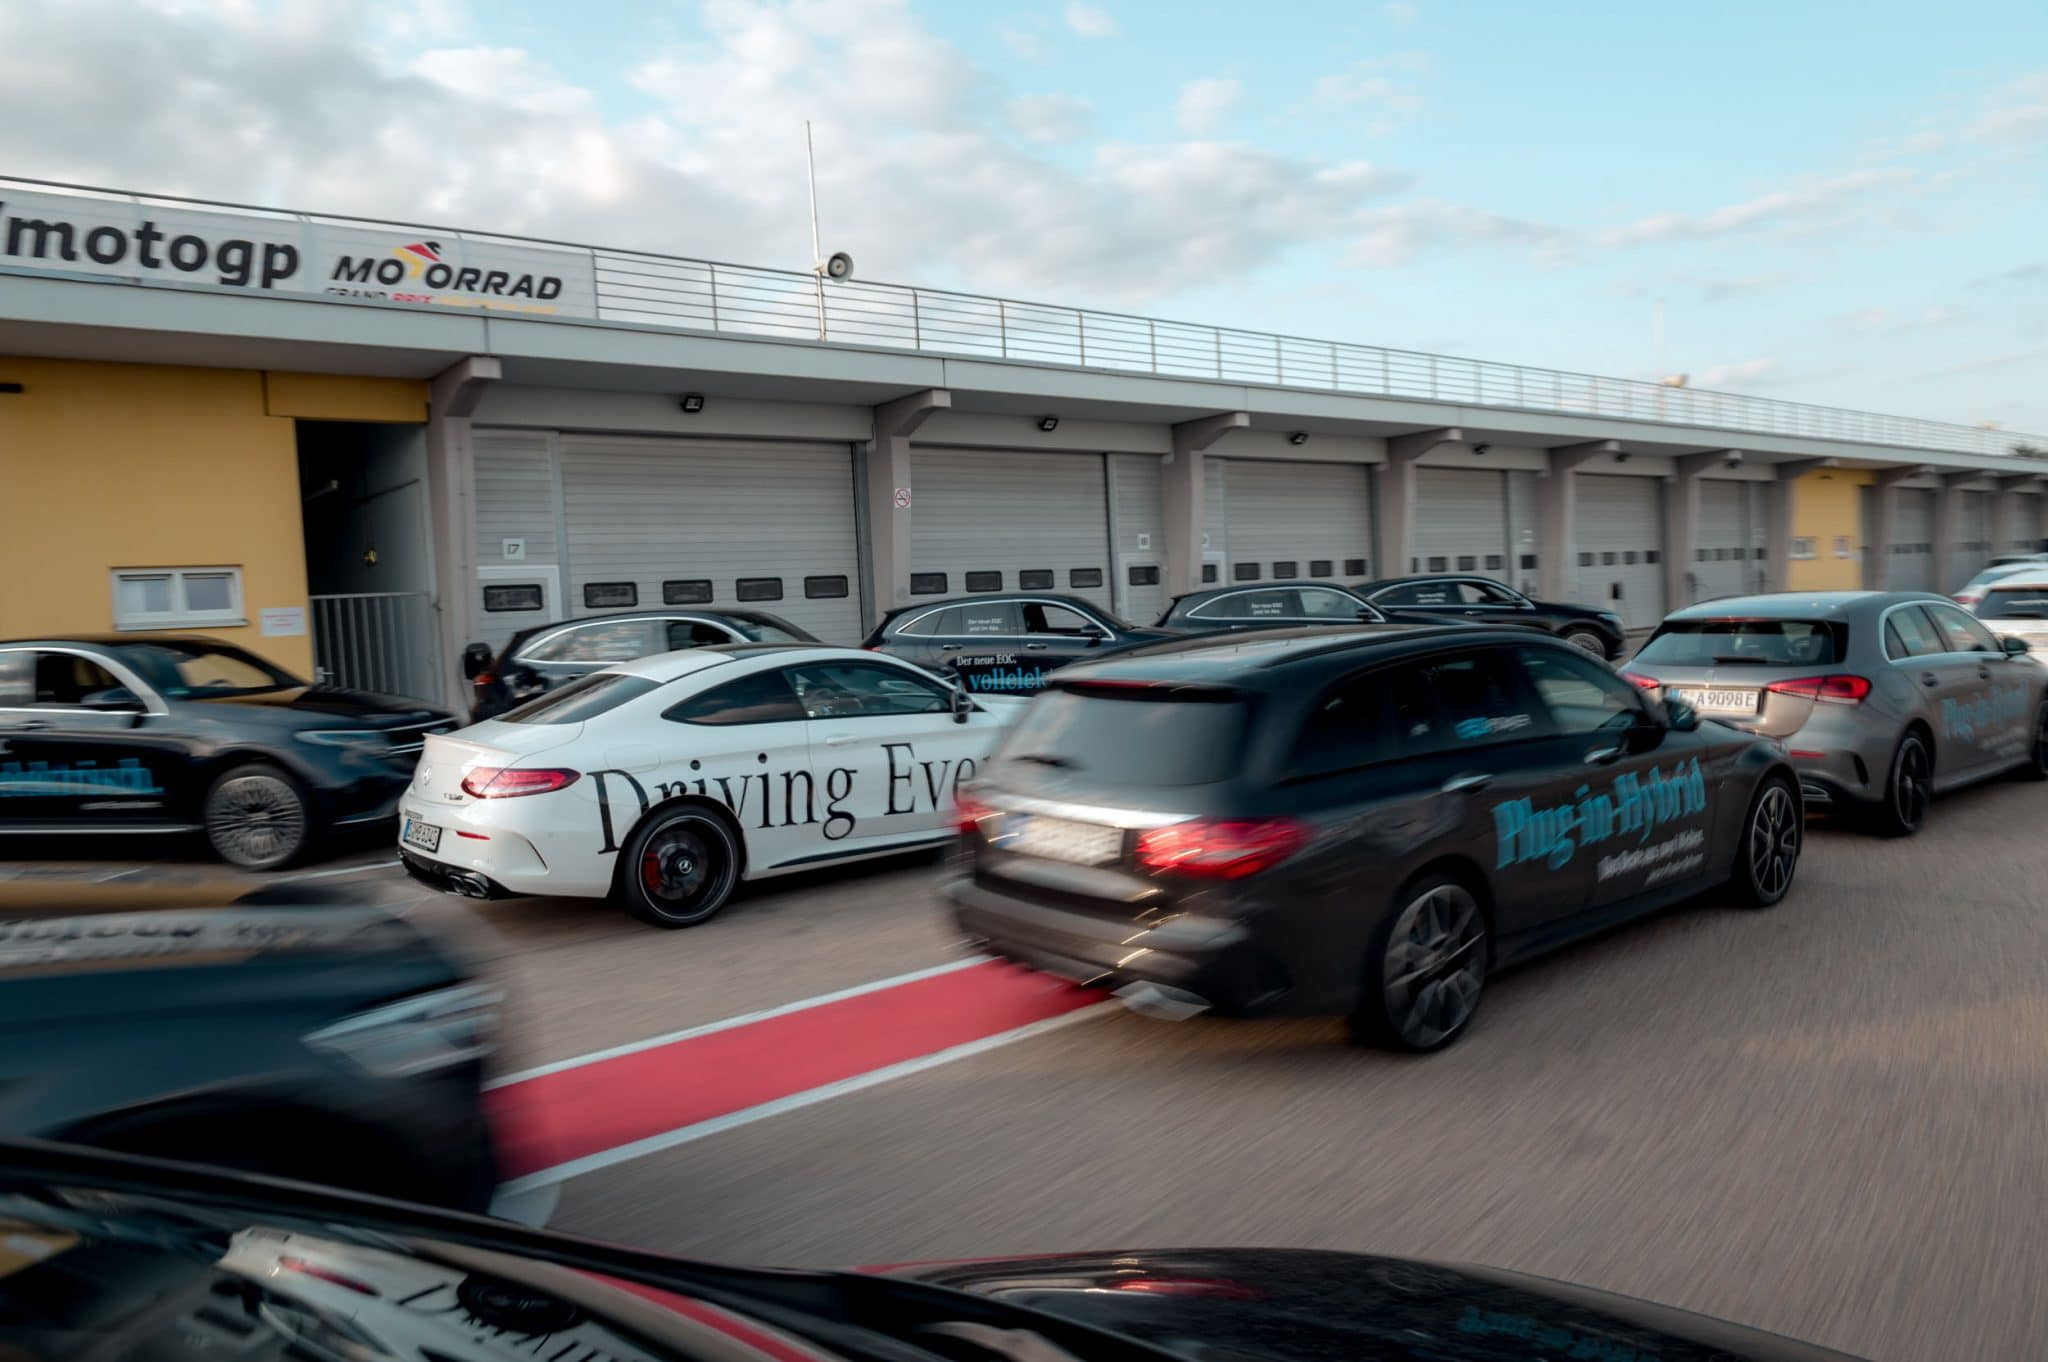 Mercedes Benz Driving Events Sachsenring 11. September 2020 765 scaled |